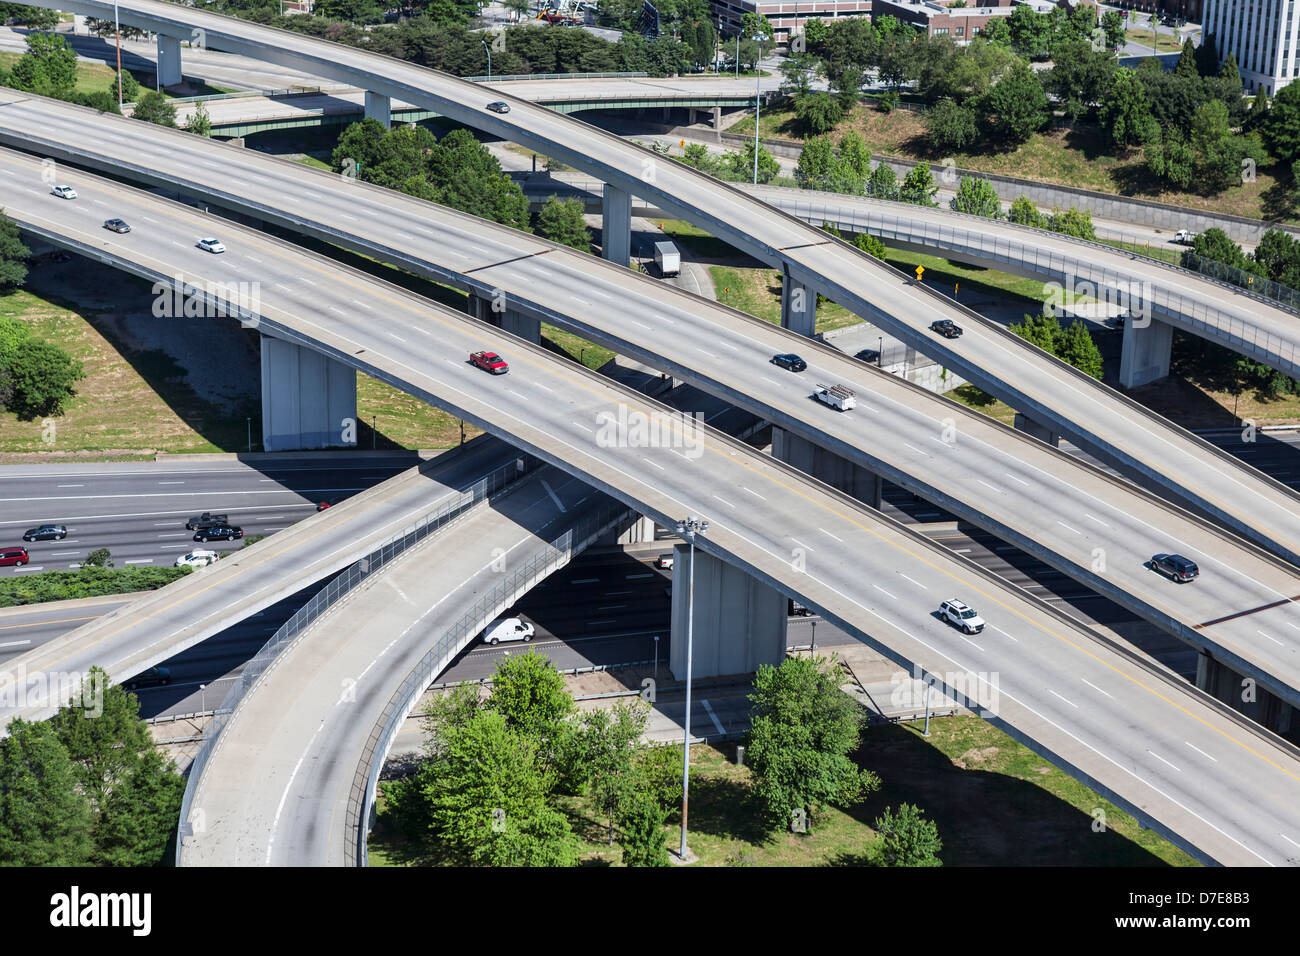 Sprawling suburban freeway interchange aerial in Atlanta Georgia. - Stock Image